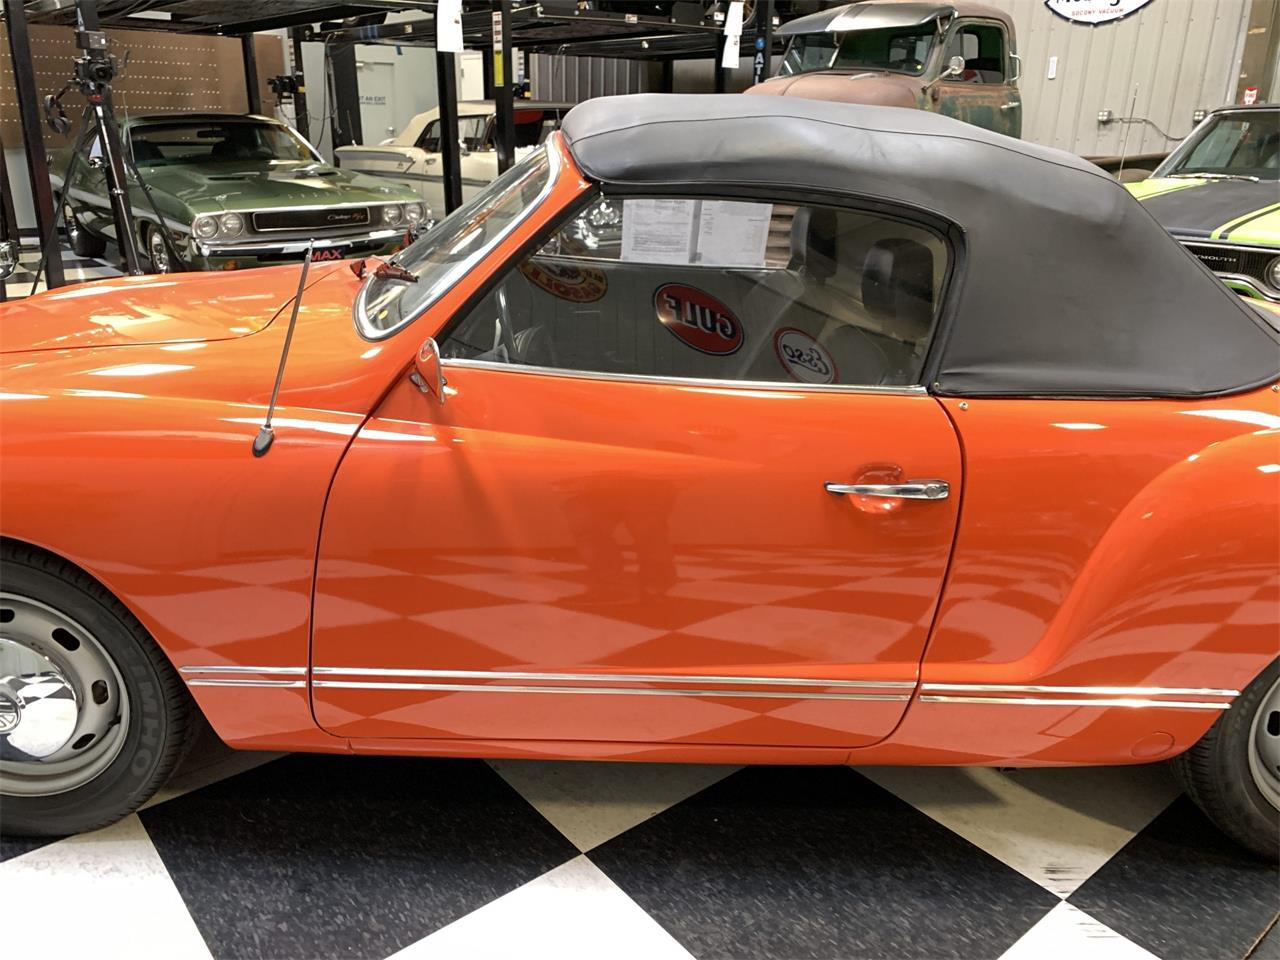 1974 Volkswagen Karmann Ghia for sale in Pittsburgh, PA – photo 7